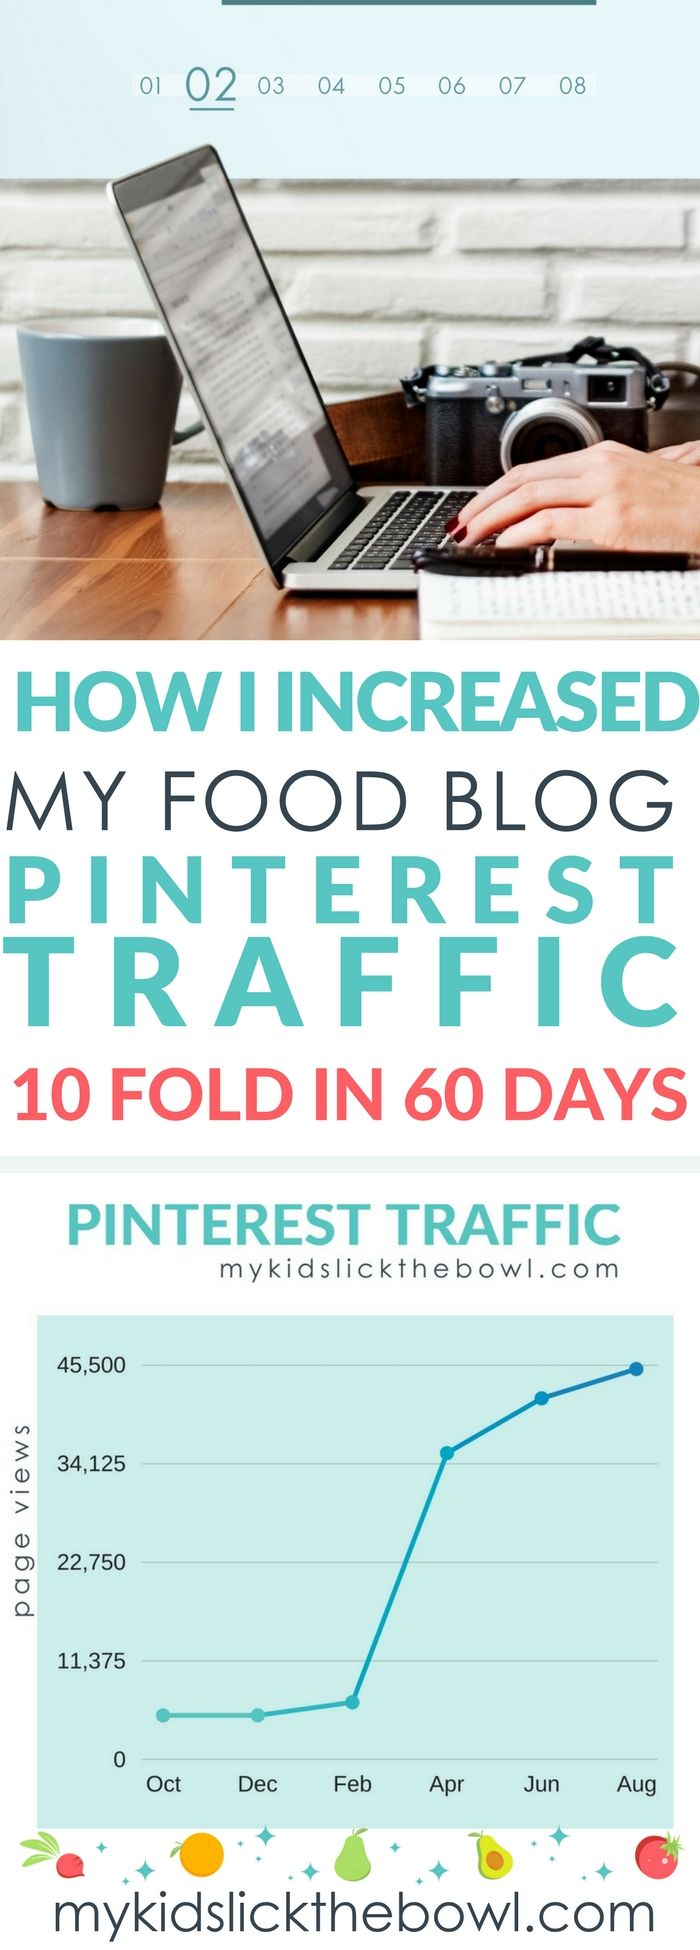 How I increase my food blogs Pinterest traffic 10 fold in just 60 days!